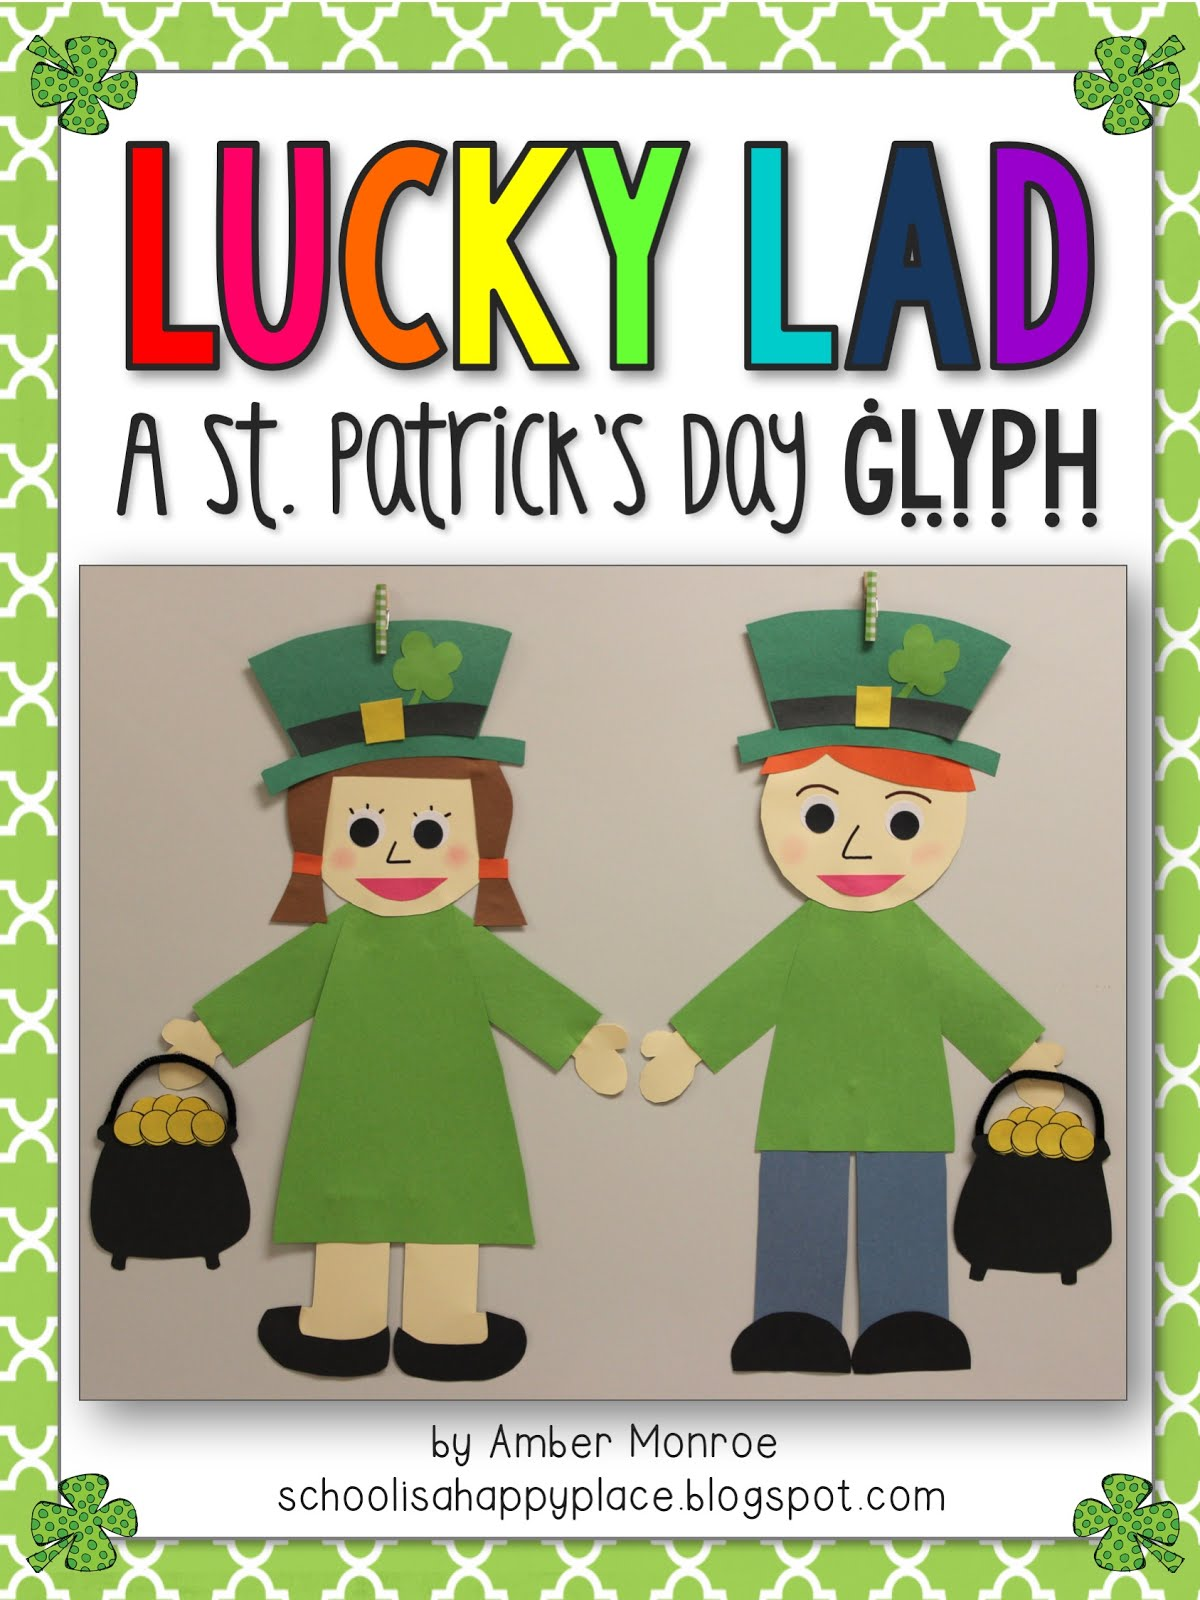 Let's Make a St. Patrick's Day Glyph